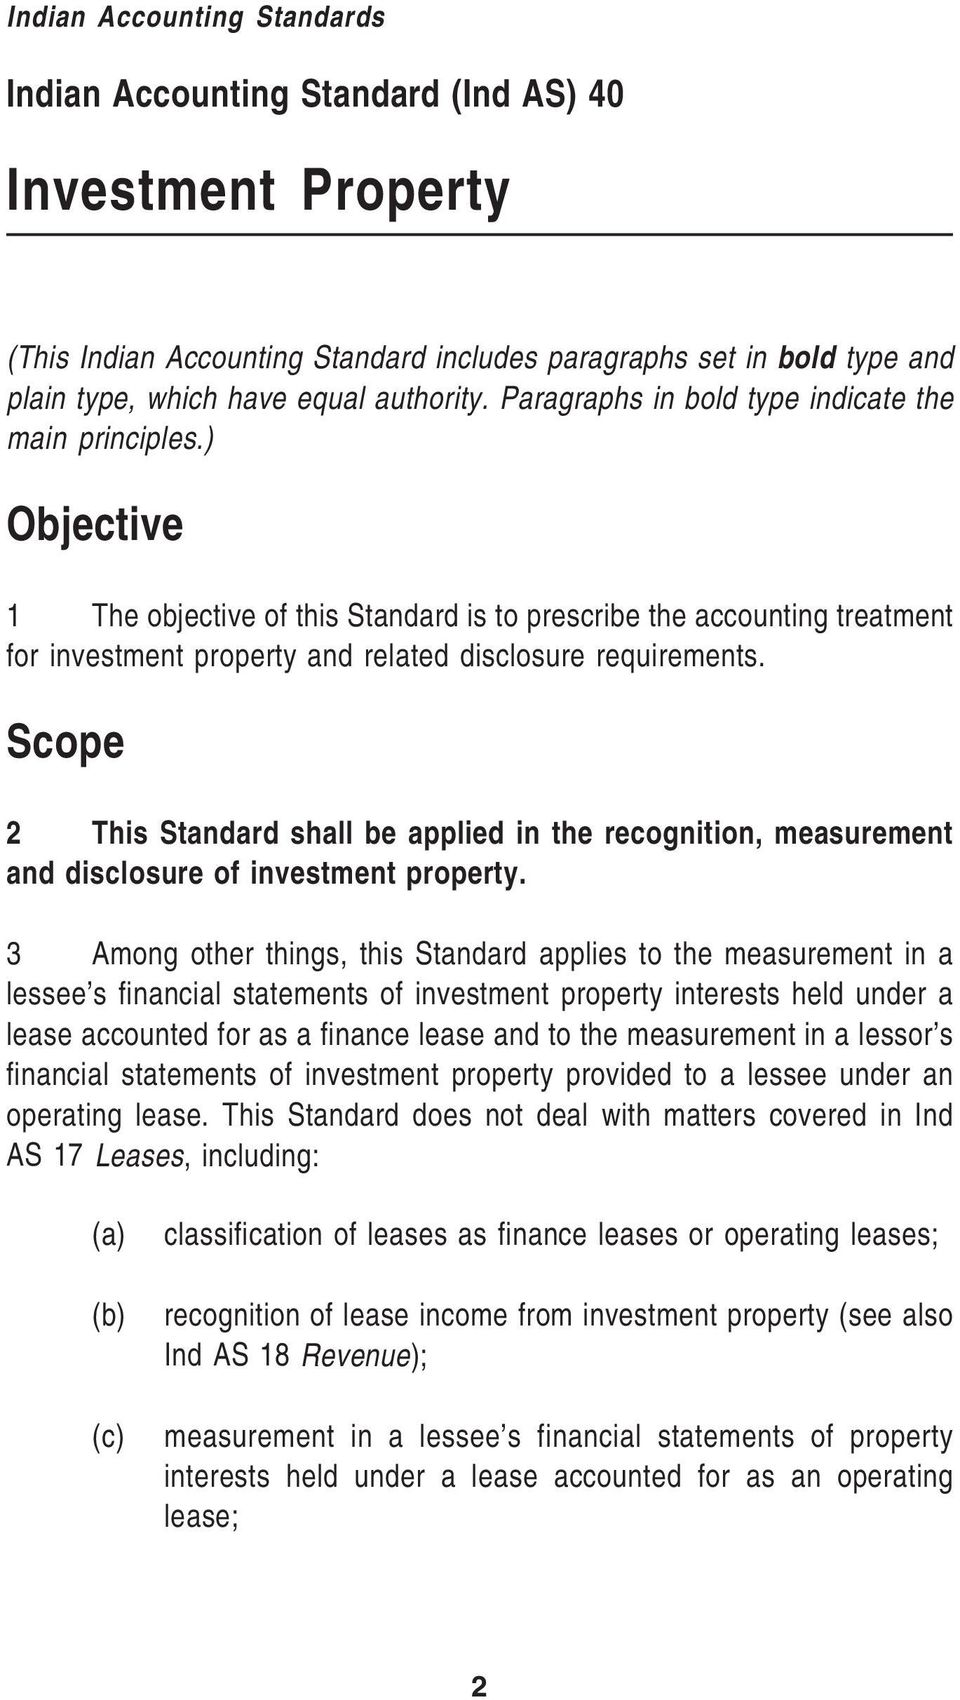 Scope 2 This Standard shall be applied in the recognition, measurement and disclosure of investment property.